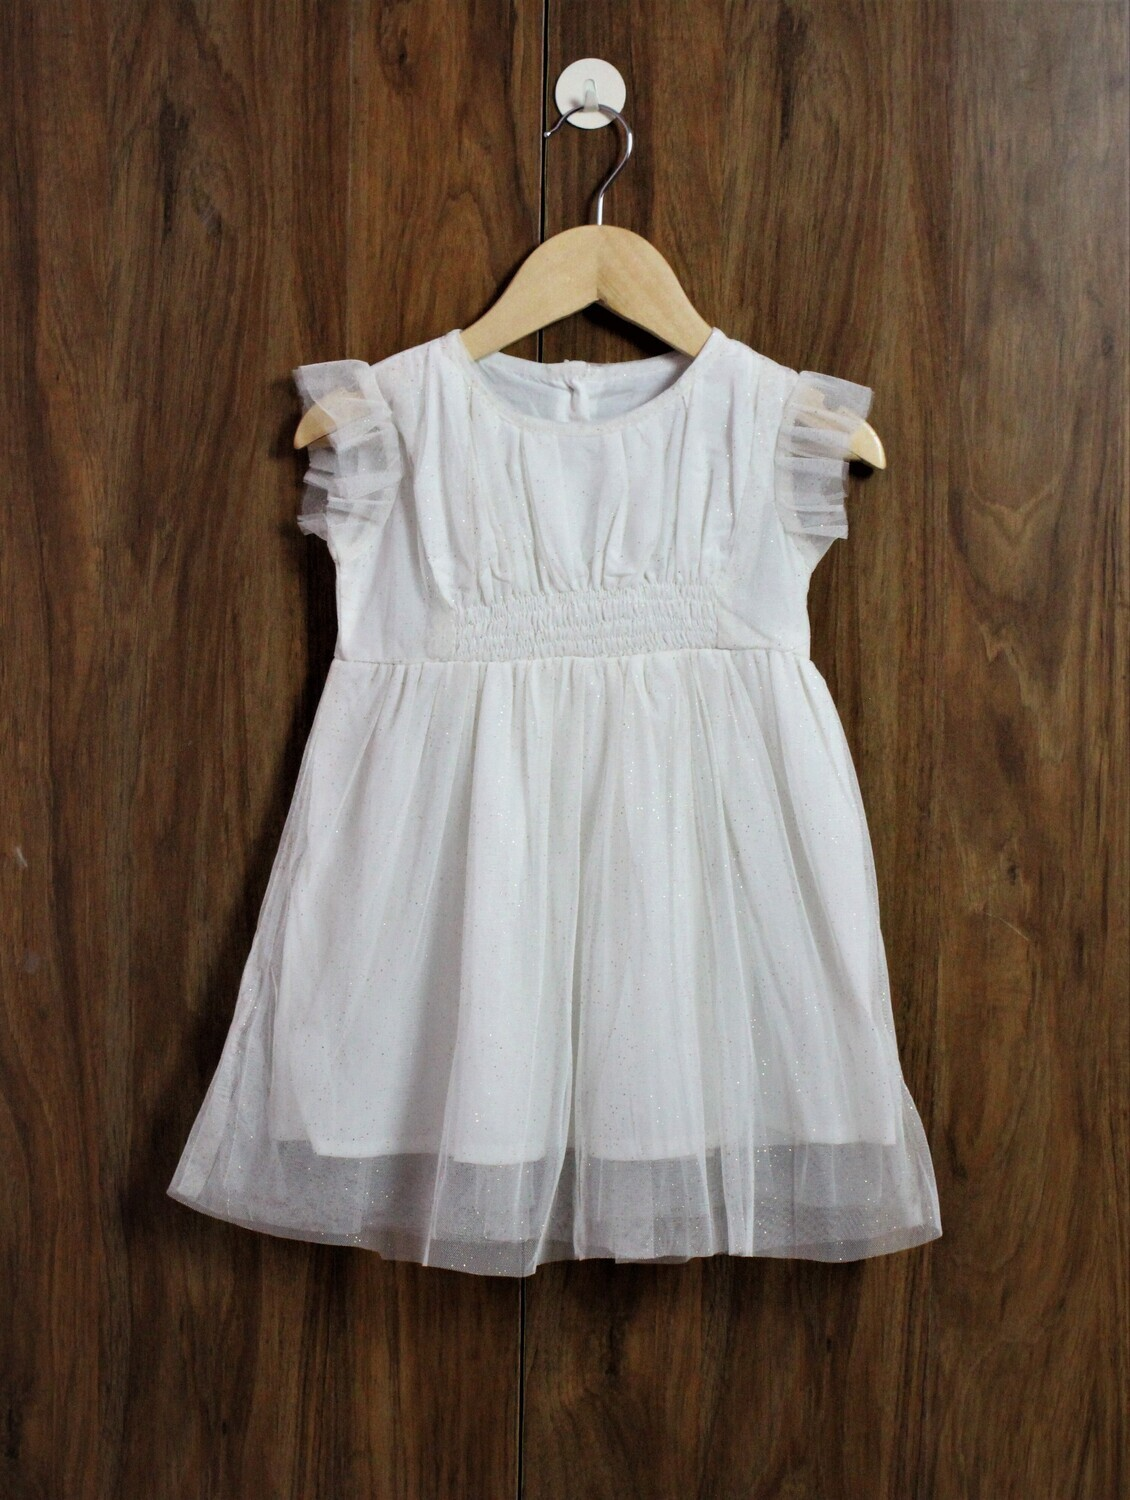 party frock (1 to 4 Yr.)